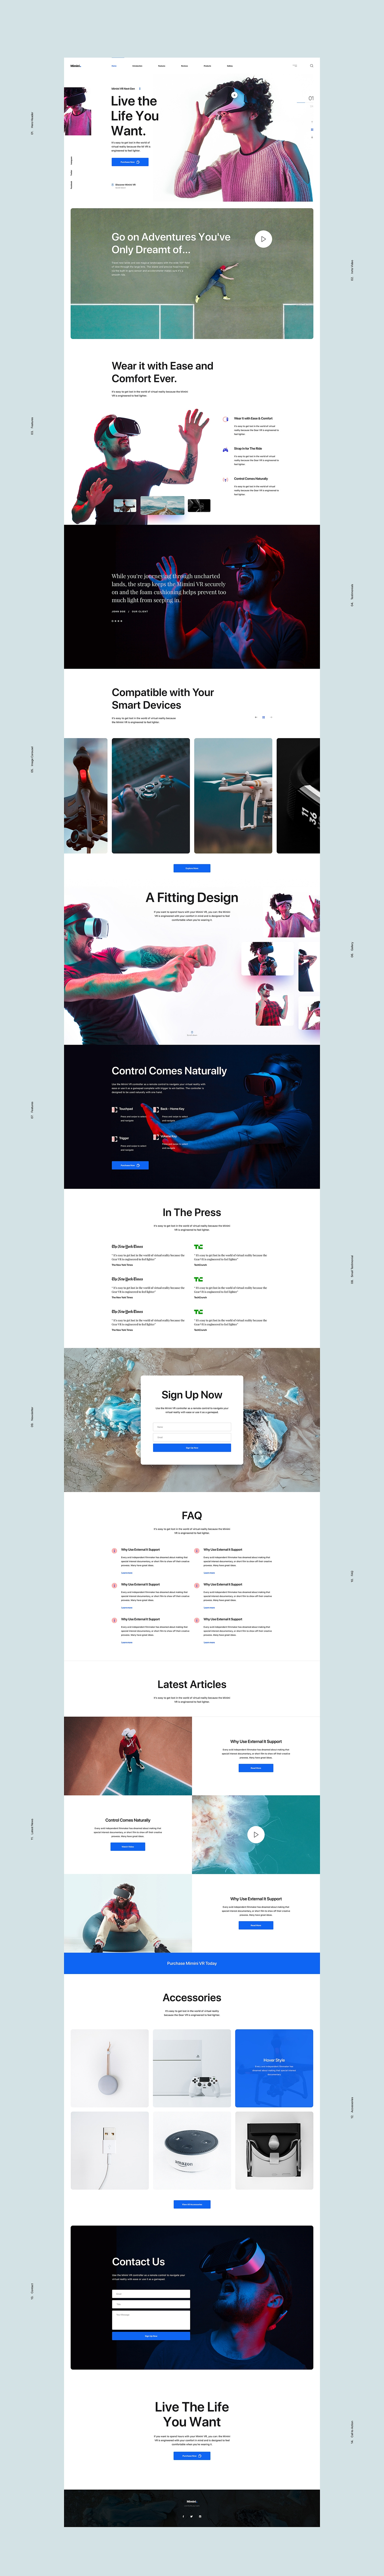 Mimini Free Landing Page - 14 sections are included in design. The artboard is fully editable, layered, carefully organized